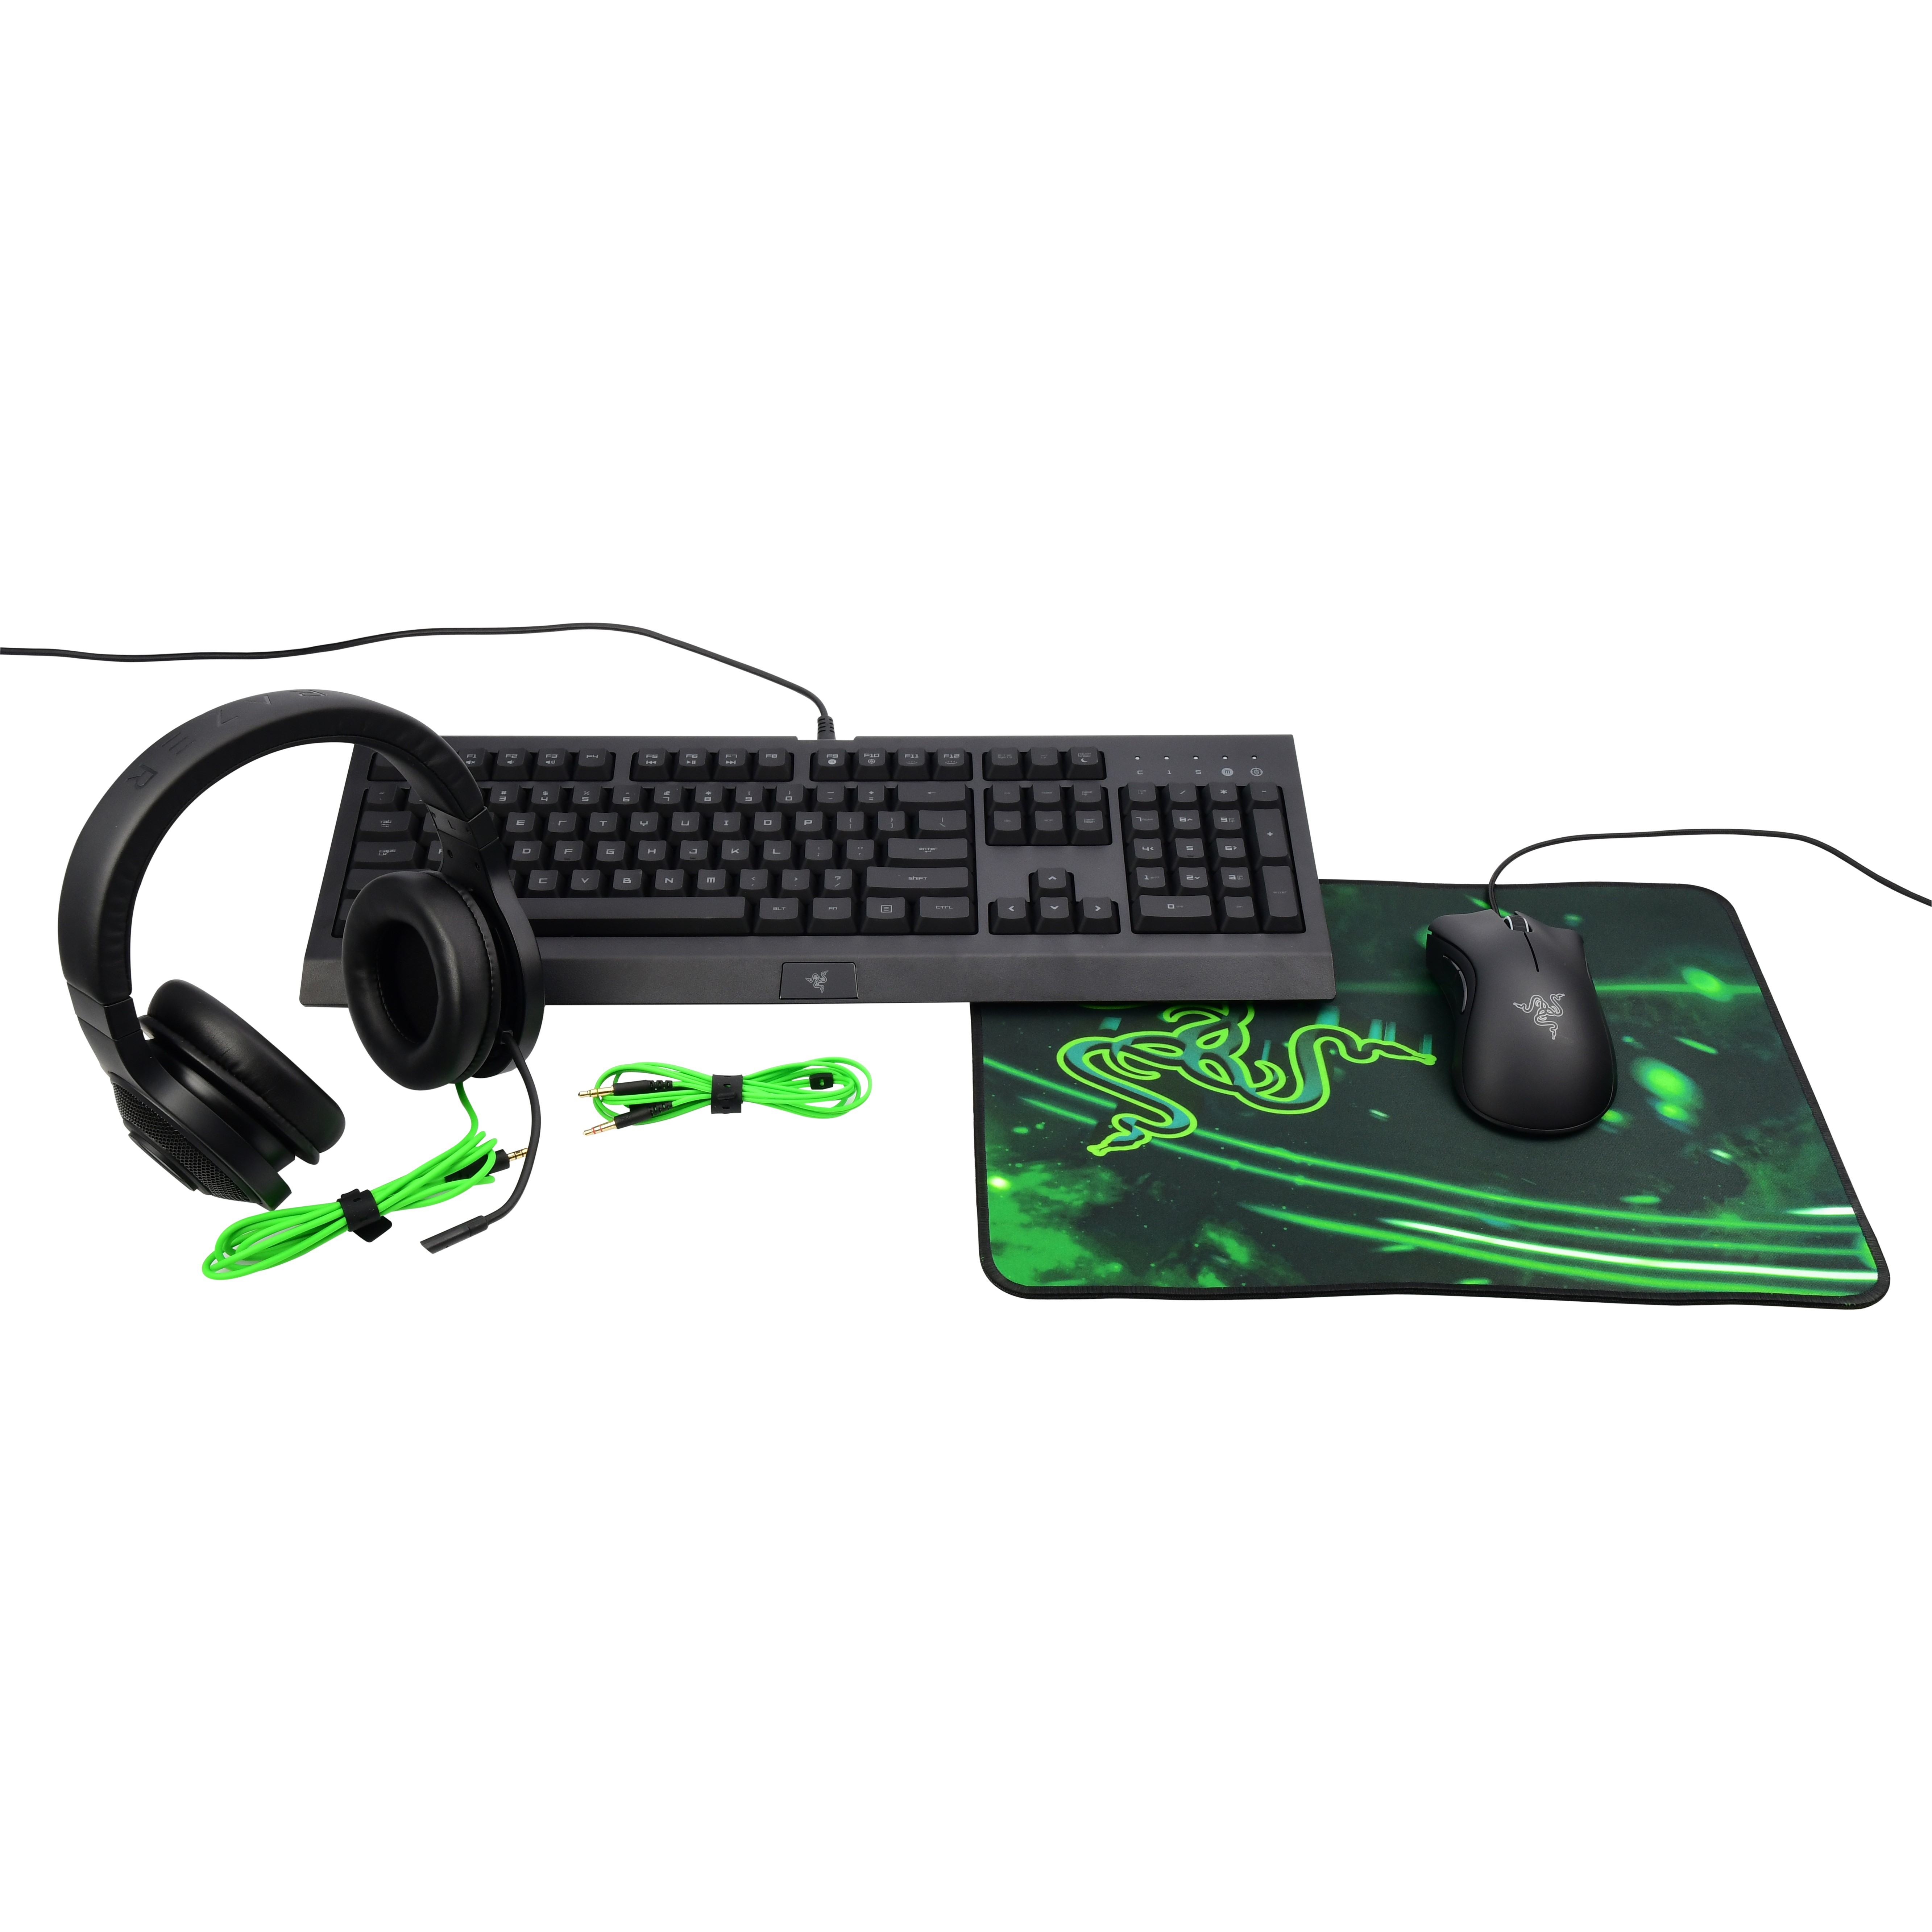 Razer 4-Piece Gaming Bundle - Includes Cynosa Pro Keyboard, DeathAdder Mouse, Kraken Headset, and Goliathus Mouse Pad